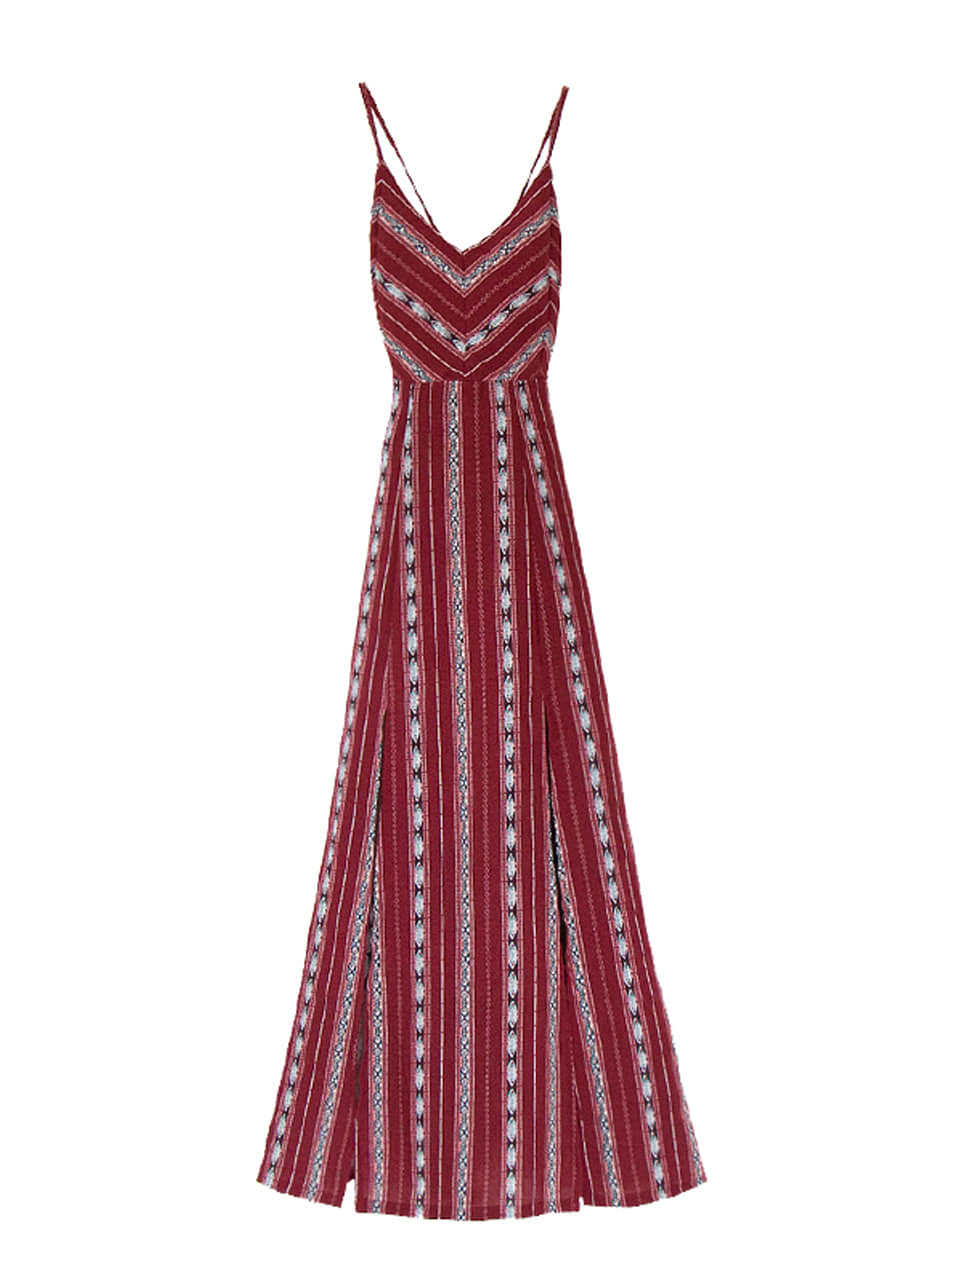 GUKAWINE ETHNIC MAXI DRESS